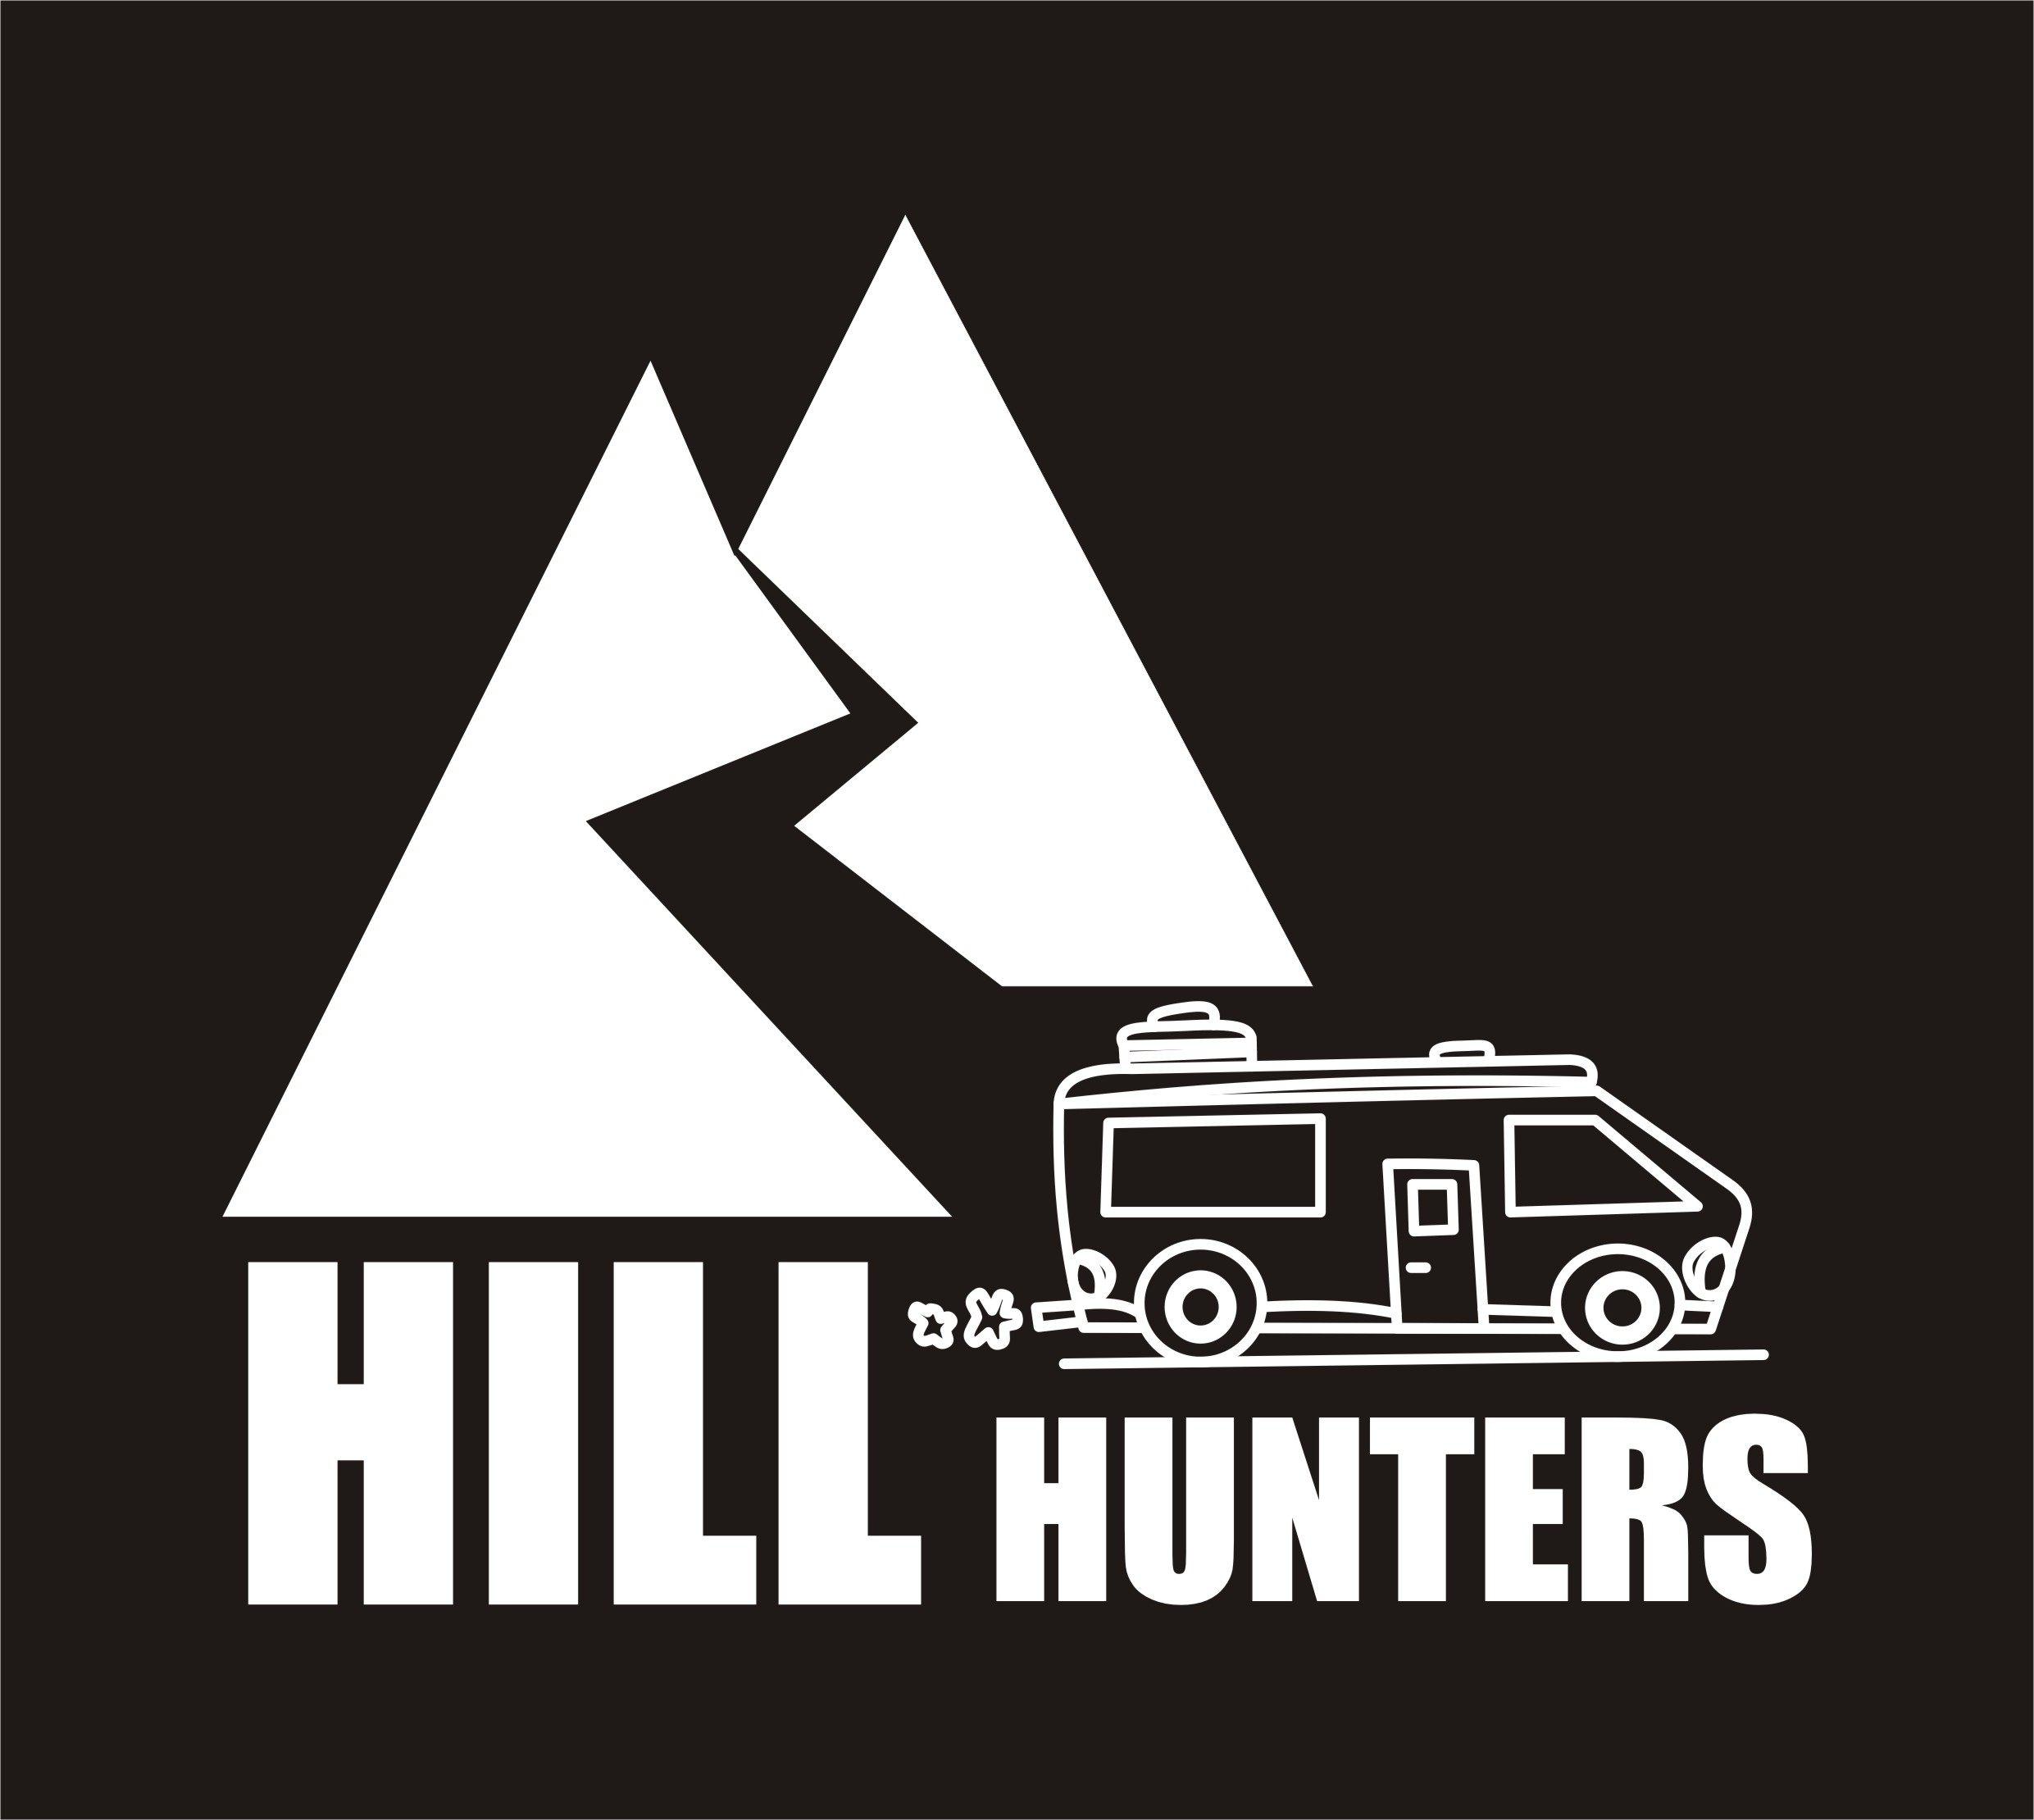 logo hill hunters alta